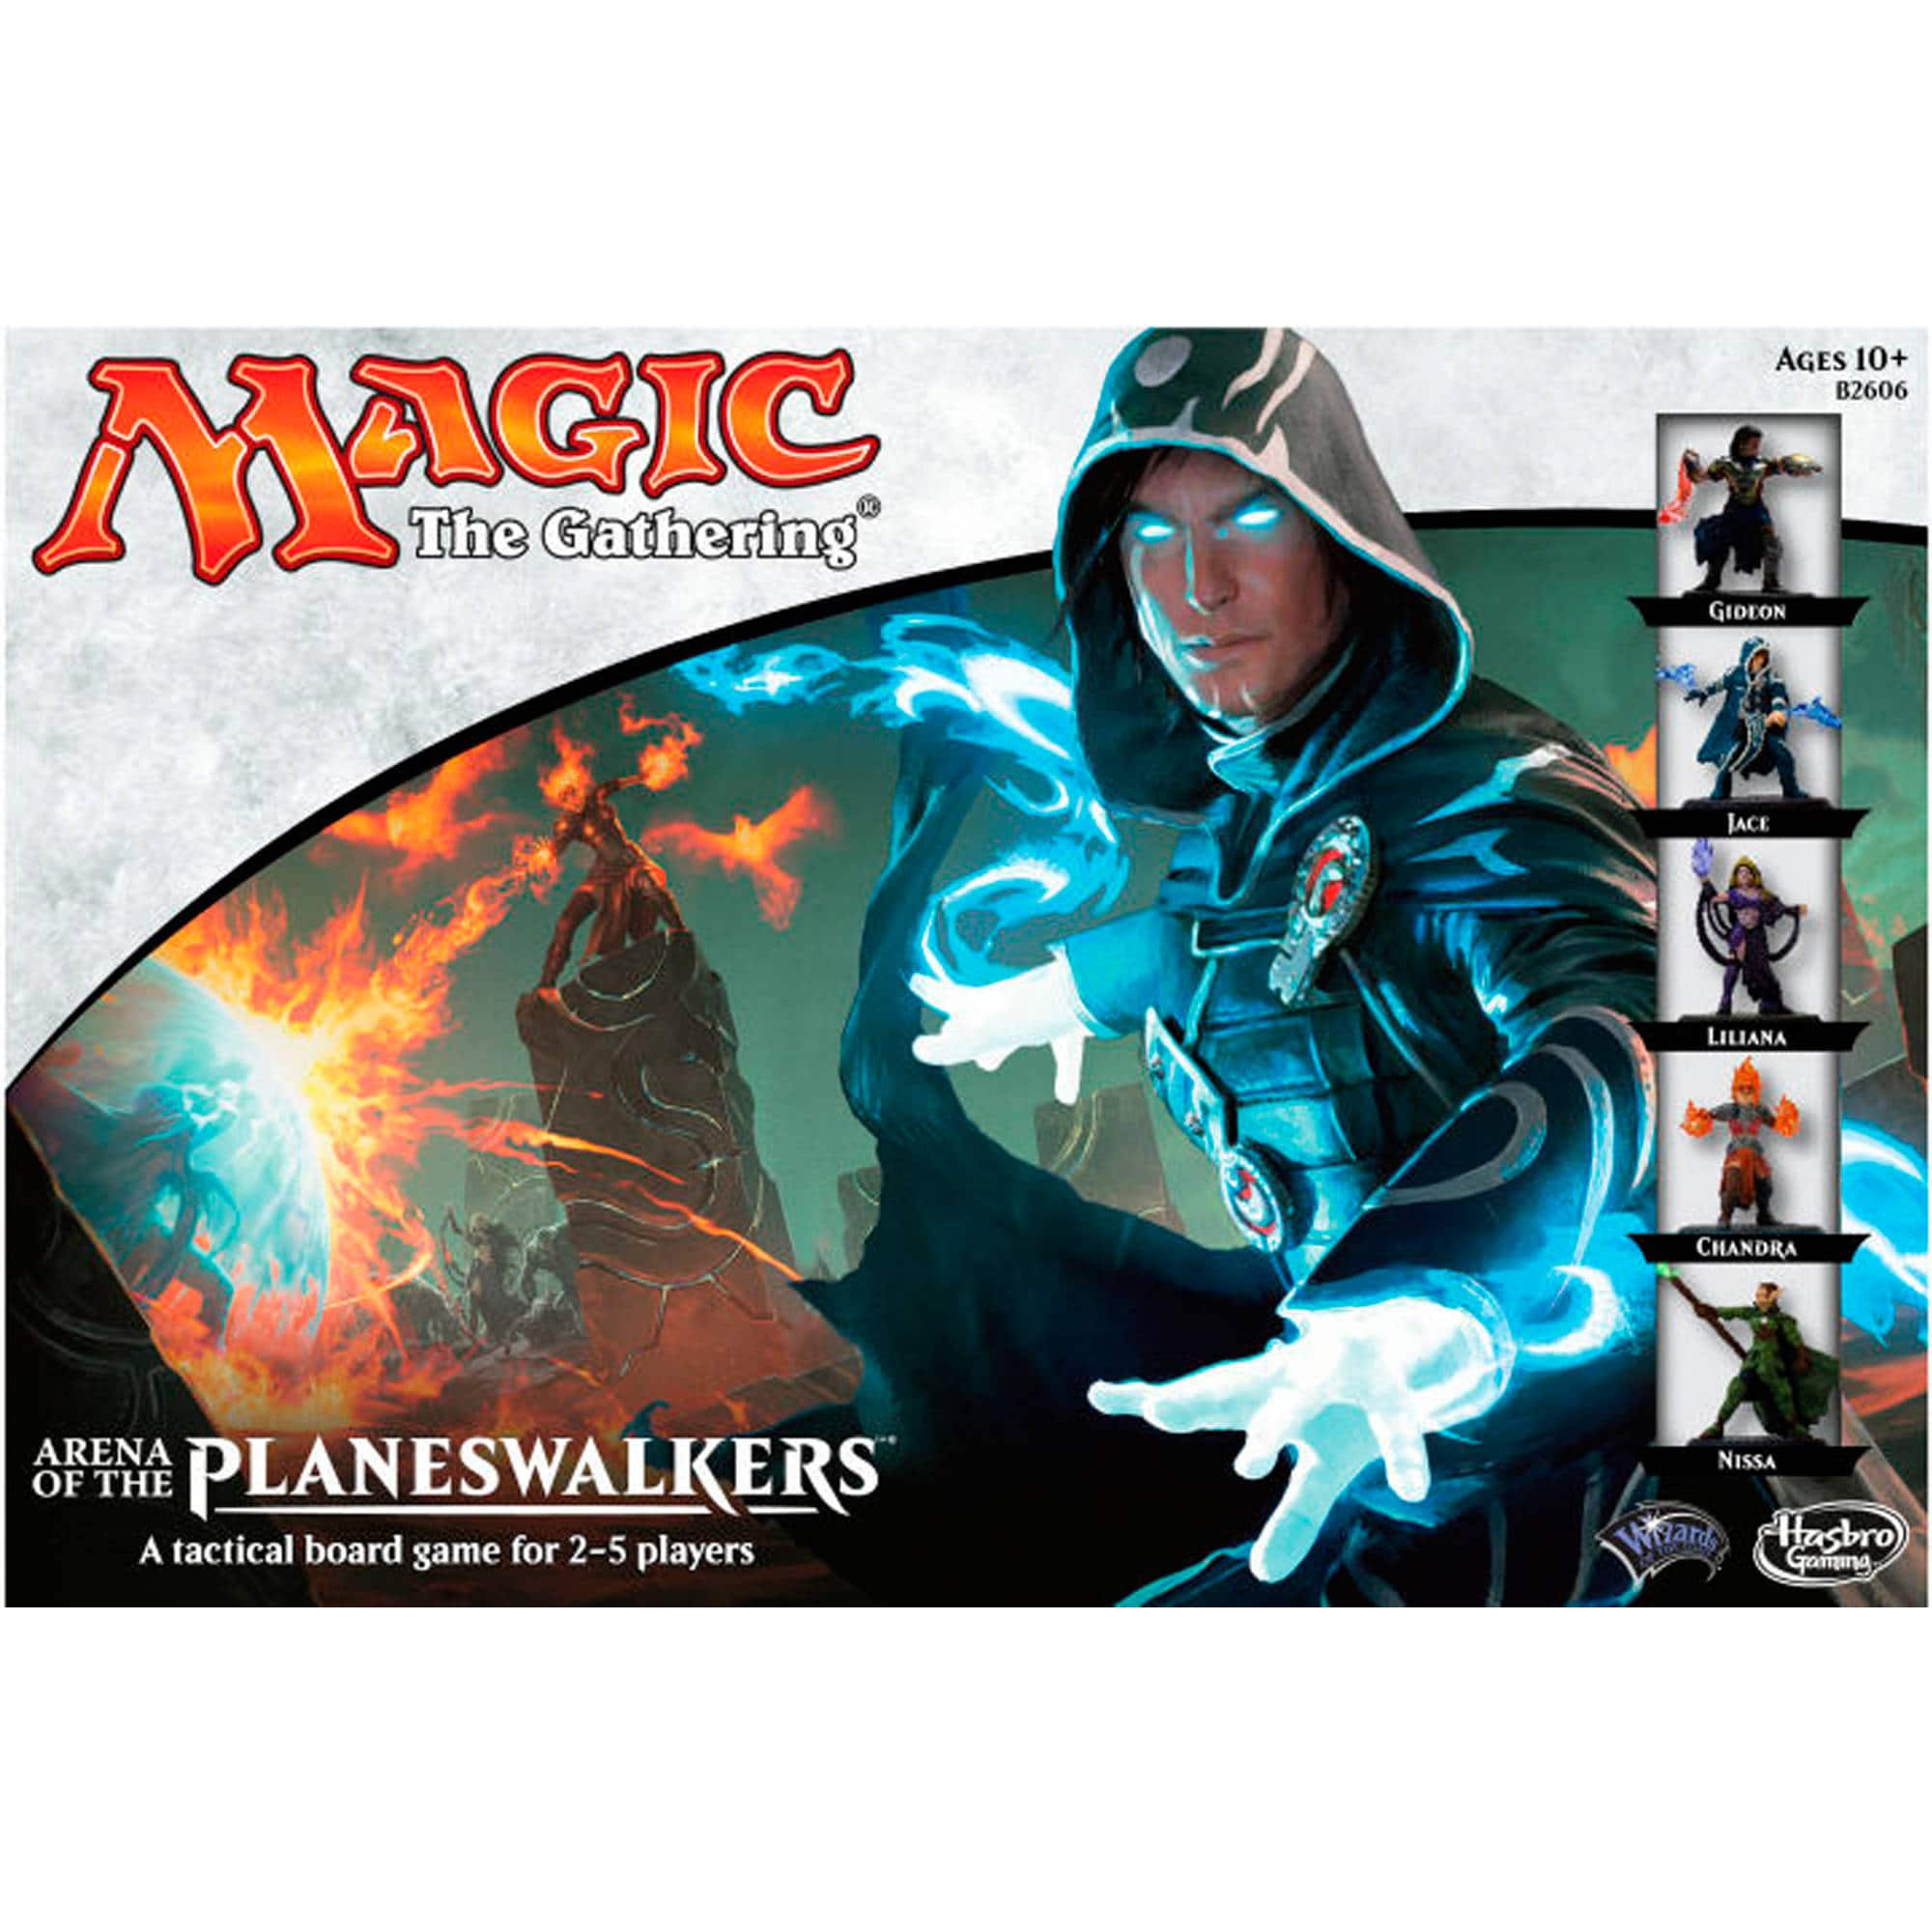 Magic: The Gathering Arena of the Planeswalkers Game $8.88 Free Store Pickup